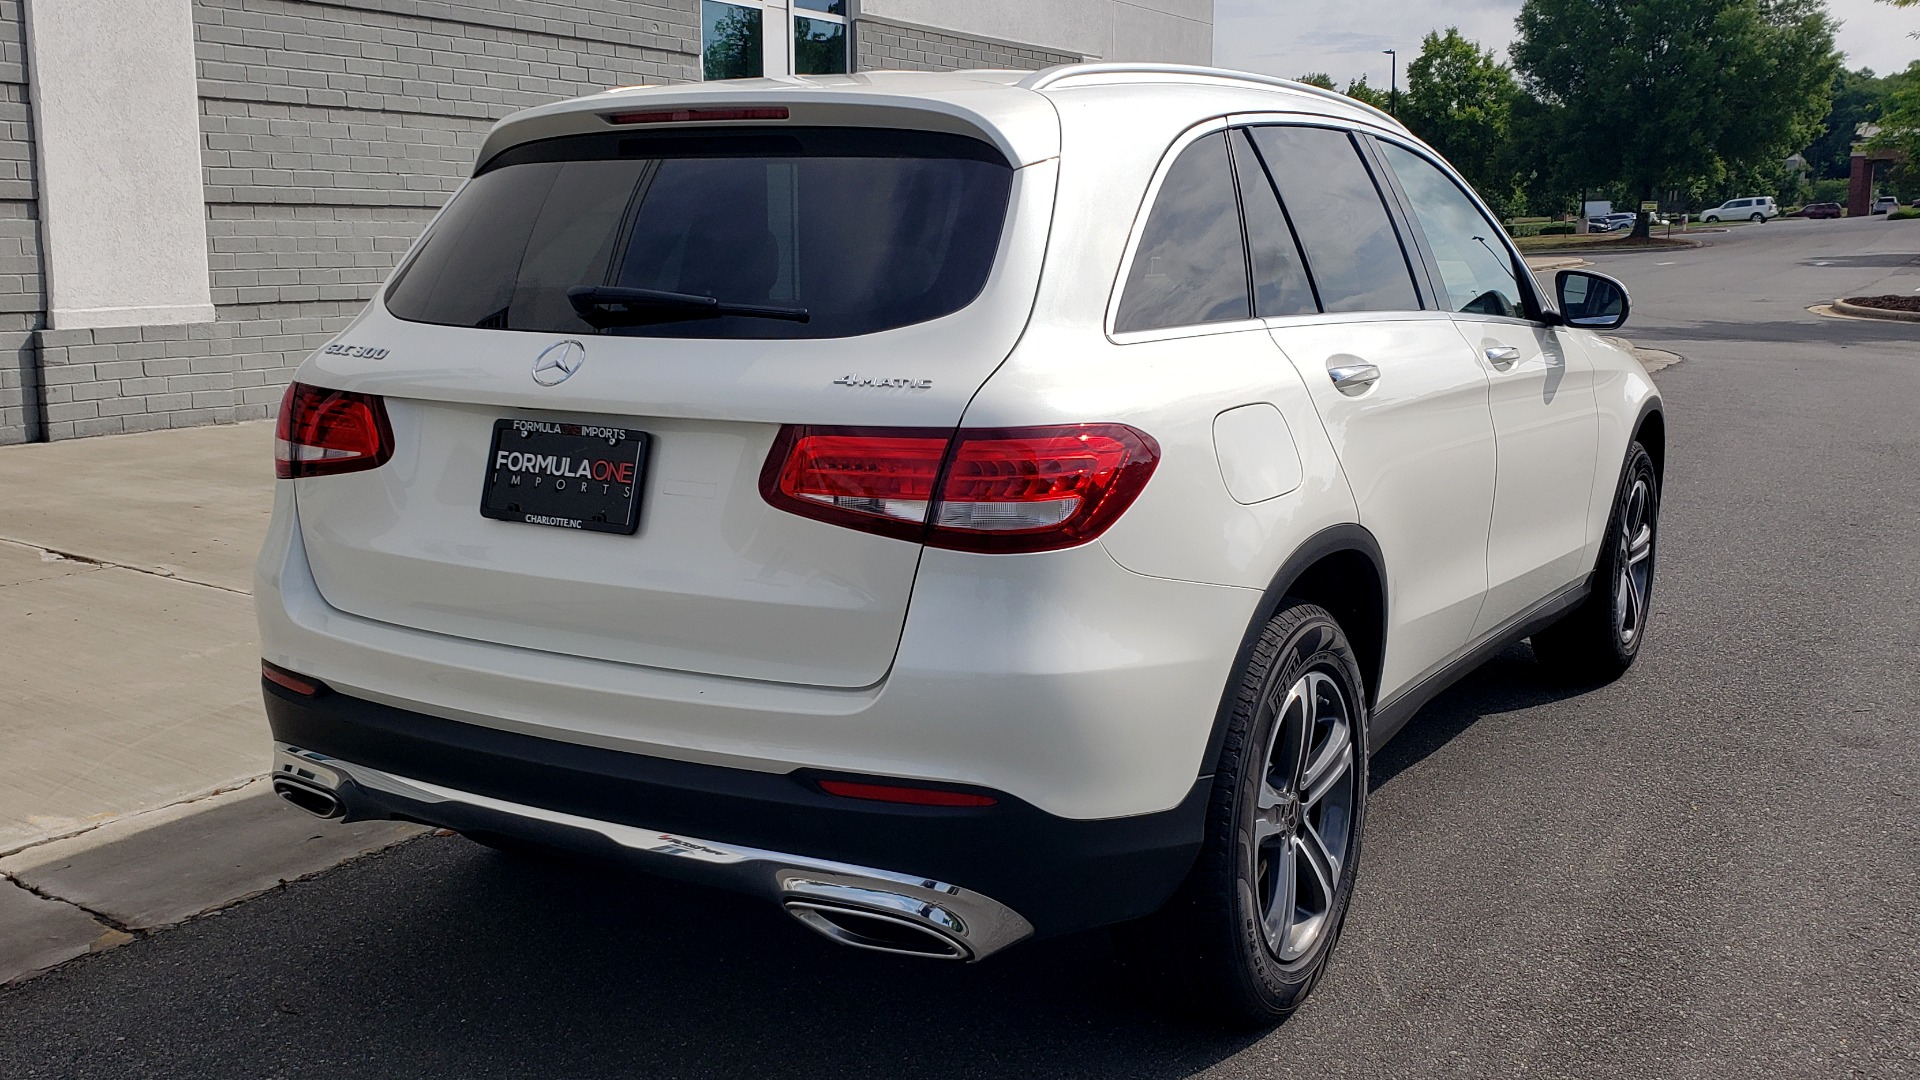 Used 2018 Mercedes-Benz GLC 300 4MATIC / PREM PKG / PANO-ROOF / APPLE / REARVIEW for sale $33,397 at Formula Imports in Charlotte NC 28227 2